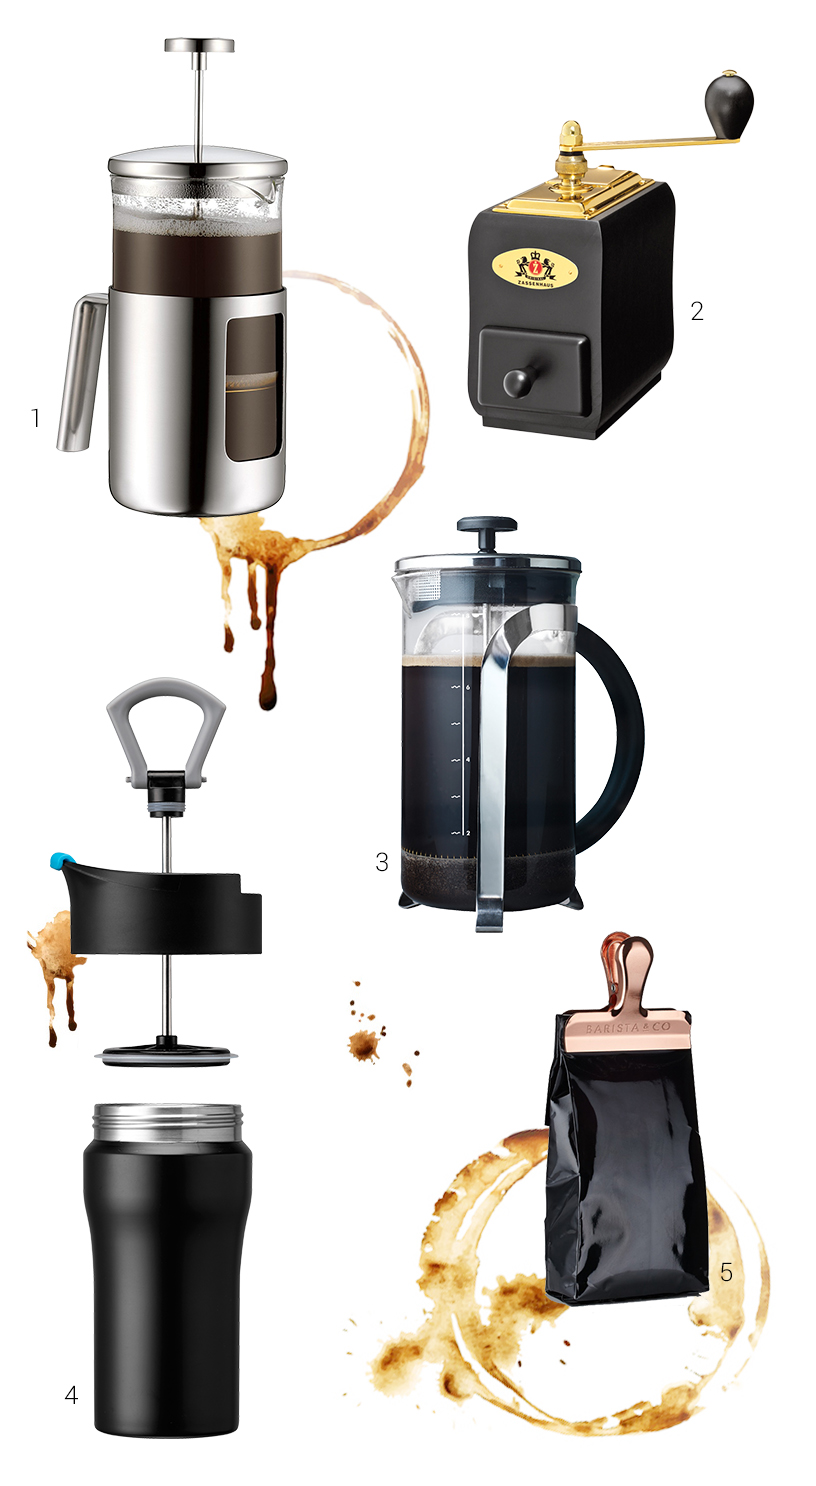 Collage of products from the Ambiente fair is illustrating the artisanship of coffee preparation